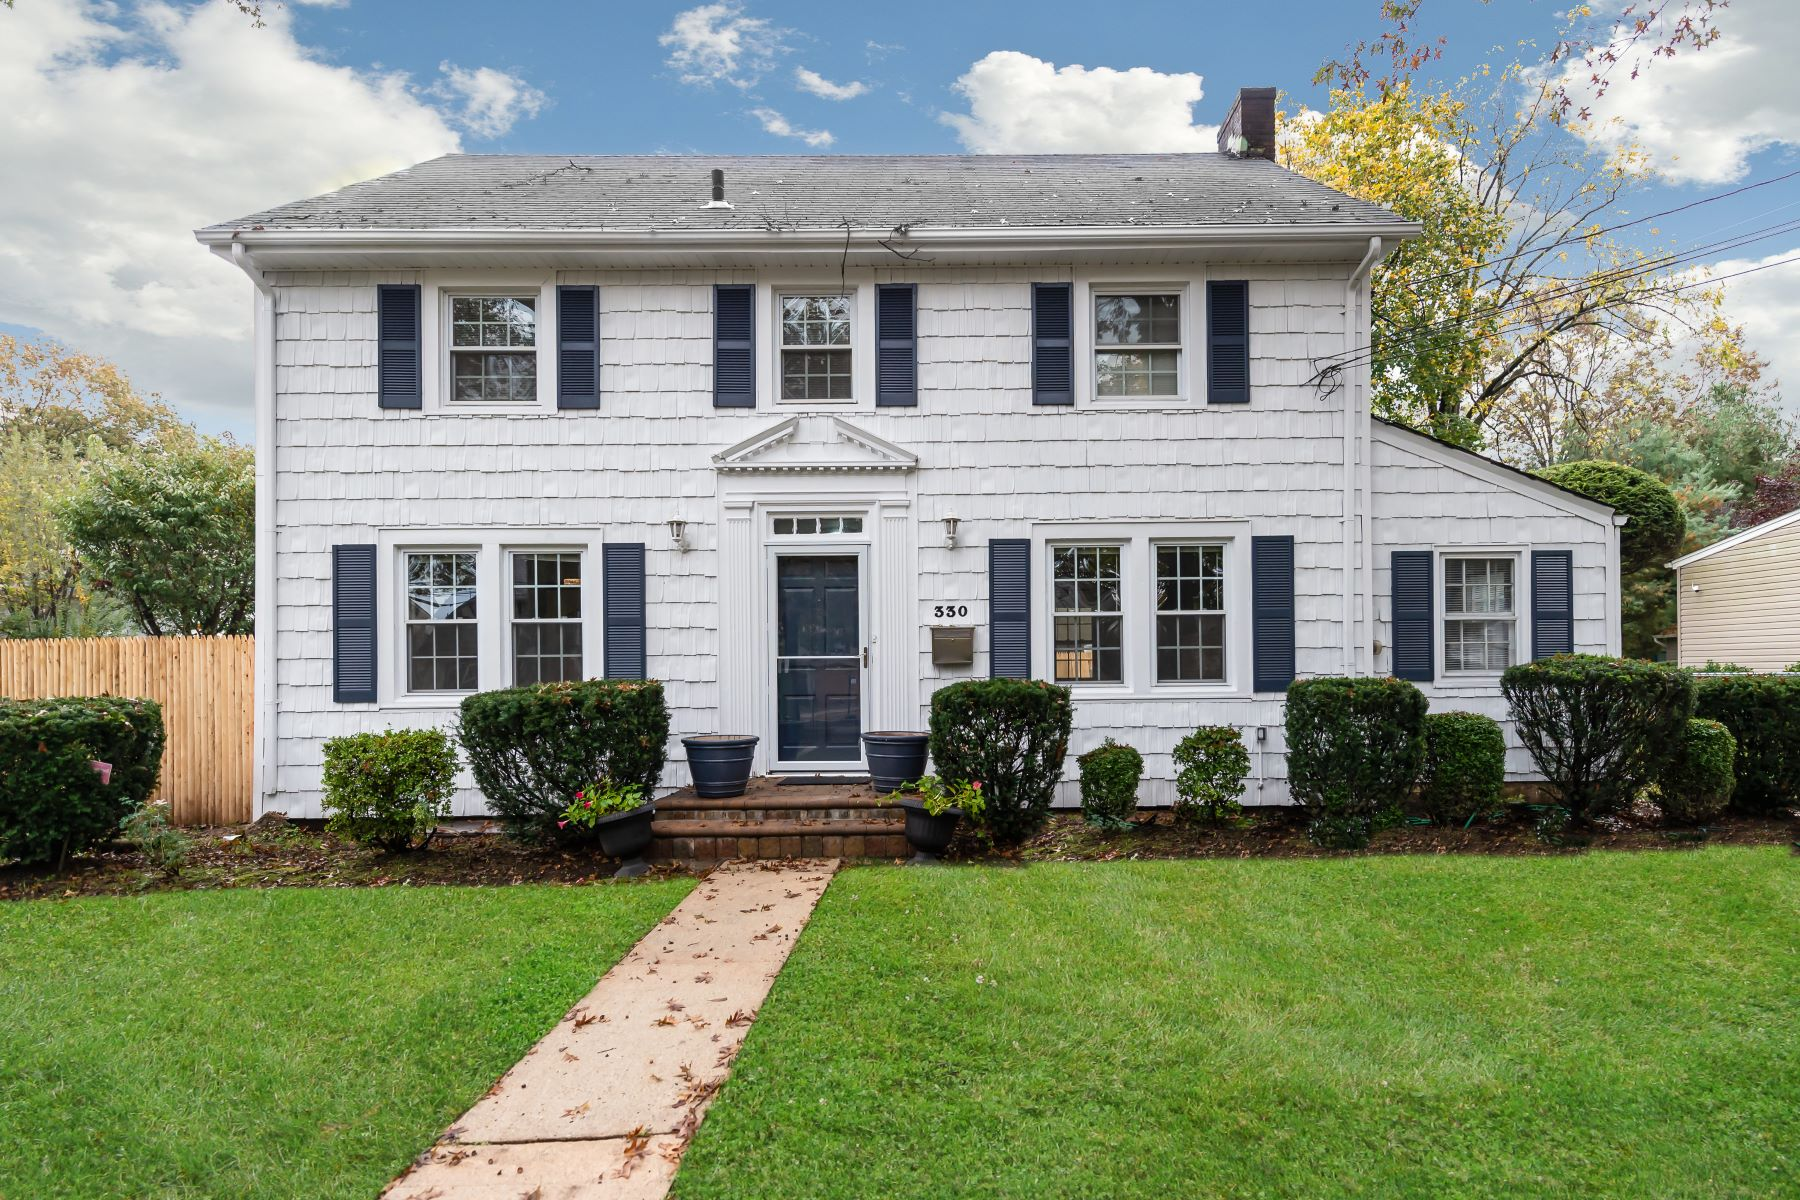 Single Family Homes for Sale at Westbury 330 Linden Pl Westbury, New York 11590 United States